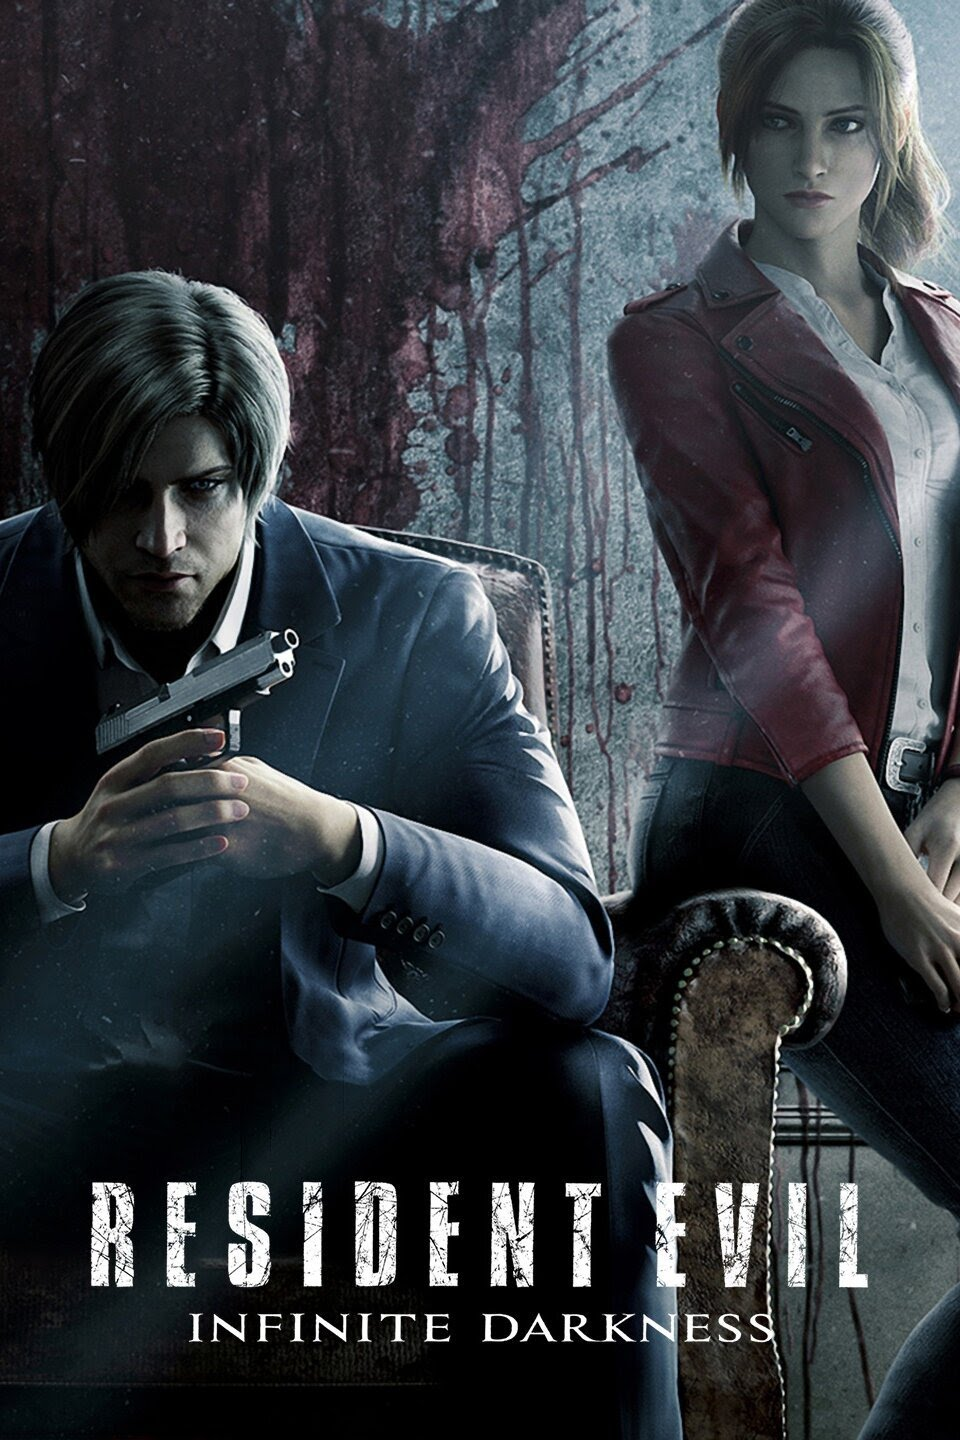 Resident Evil Infinite Darkness 2021 S01 English Complete NF Series 720p HDRip 700MB Download